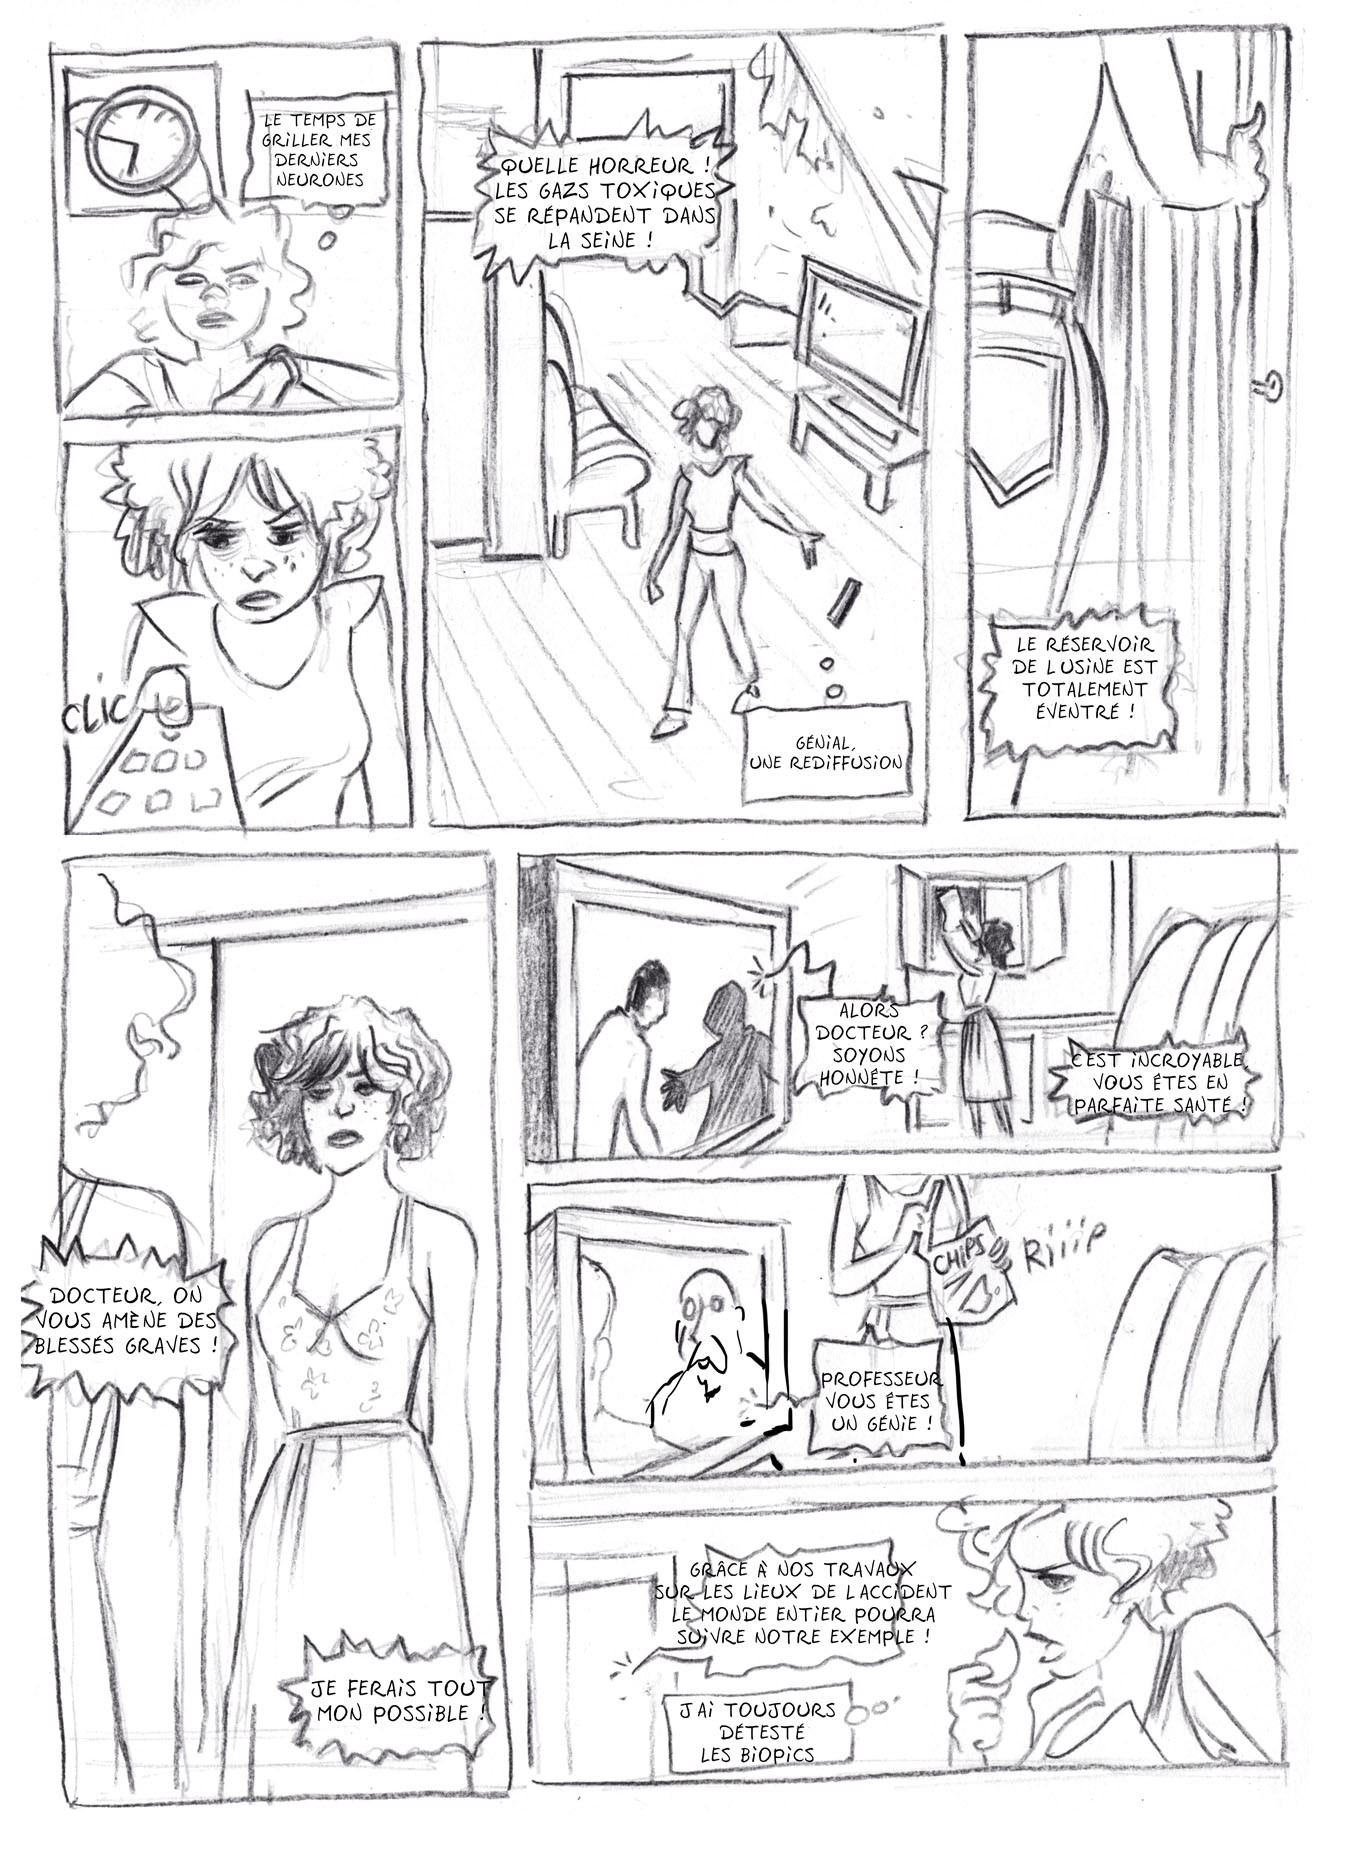 Serge fiedos oceane storyboard page08 by serge fiedos